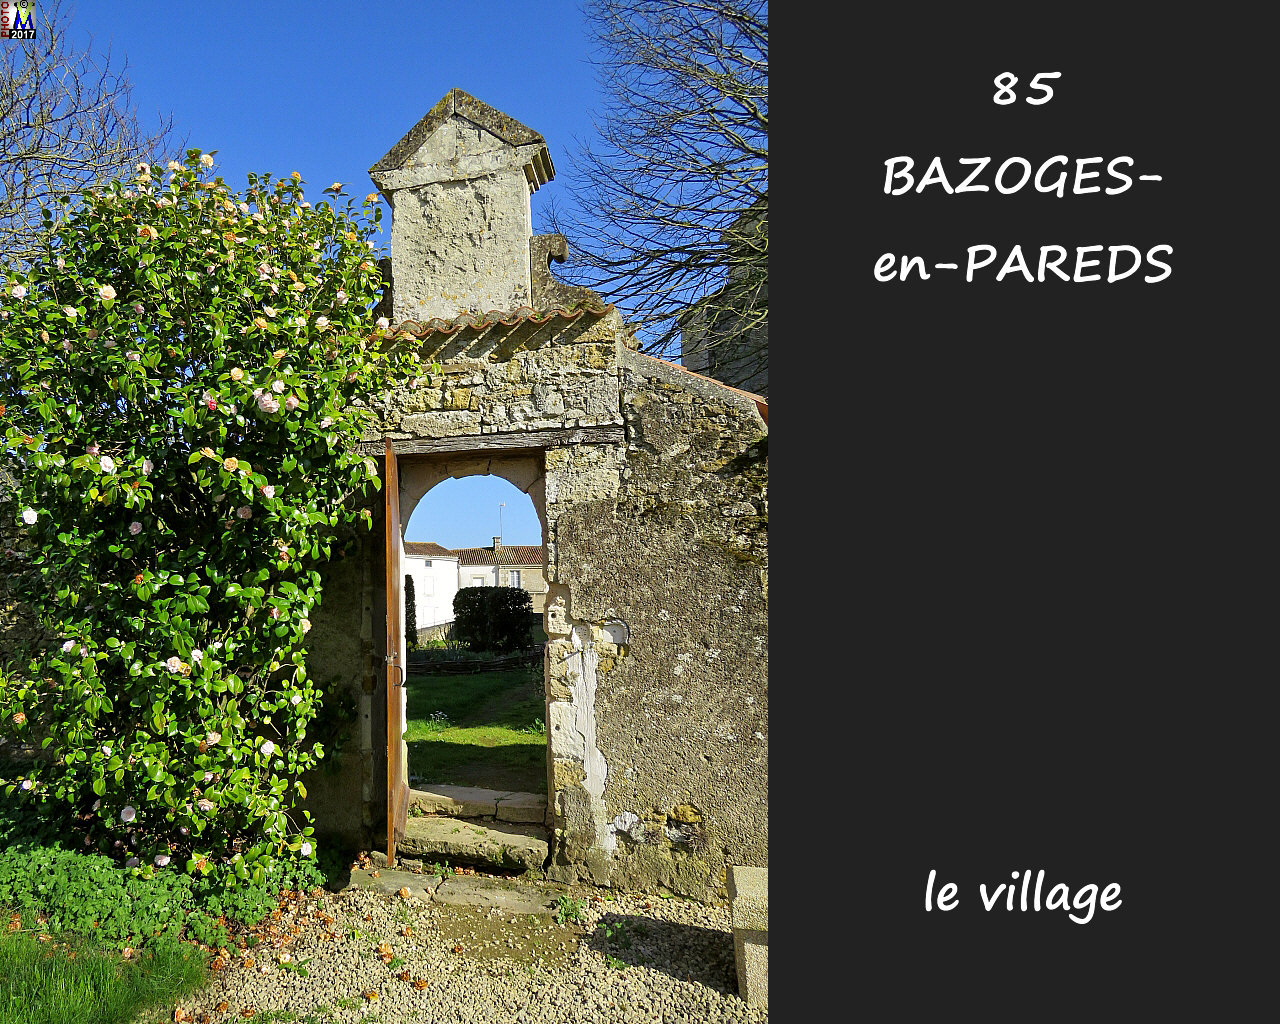 85BAZOGES-PAREDS_village_1002.jpg